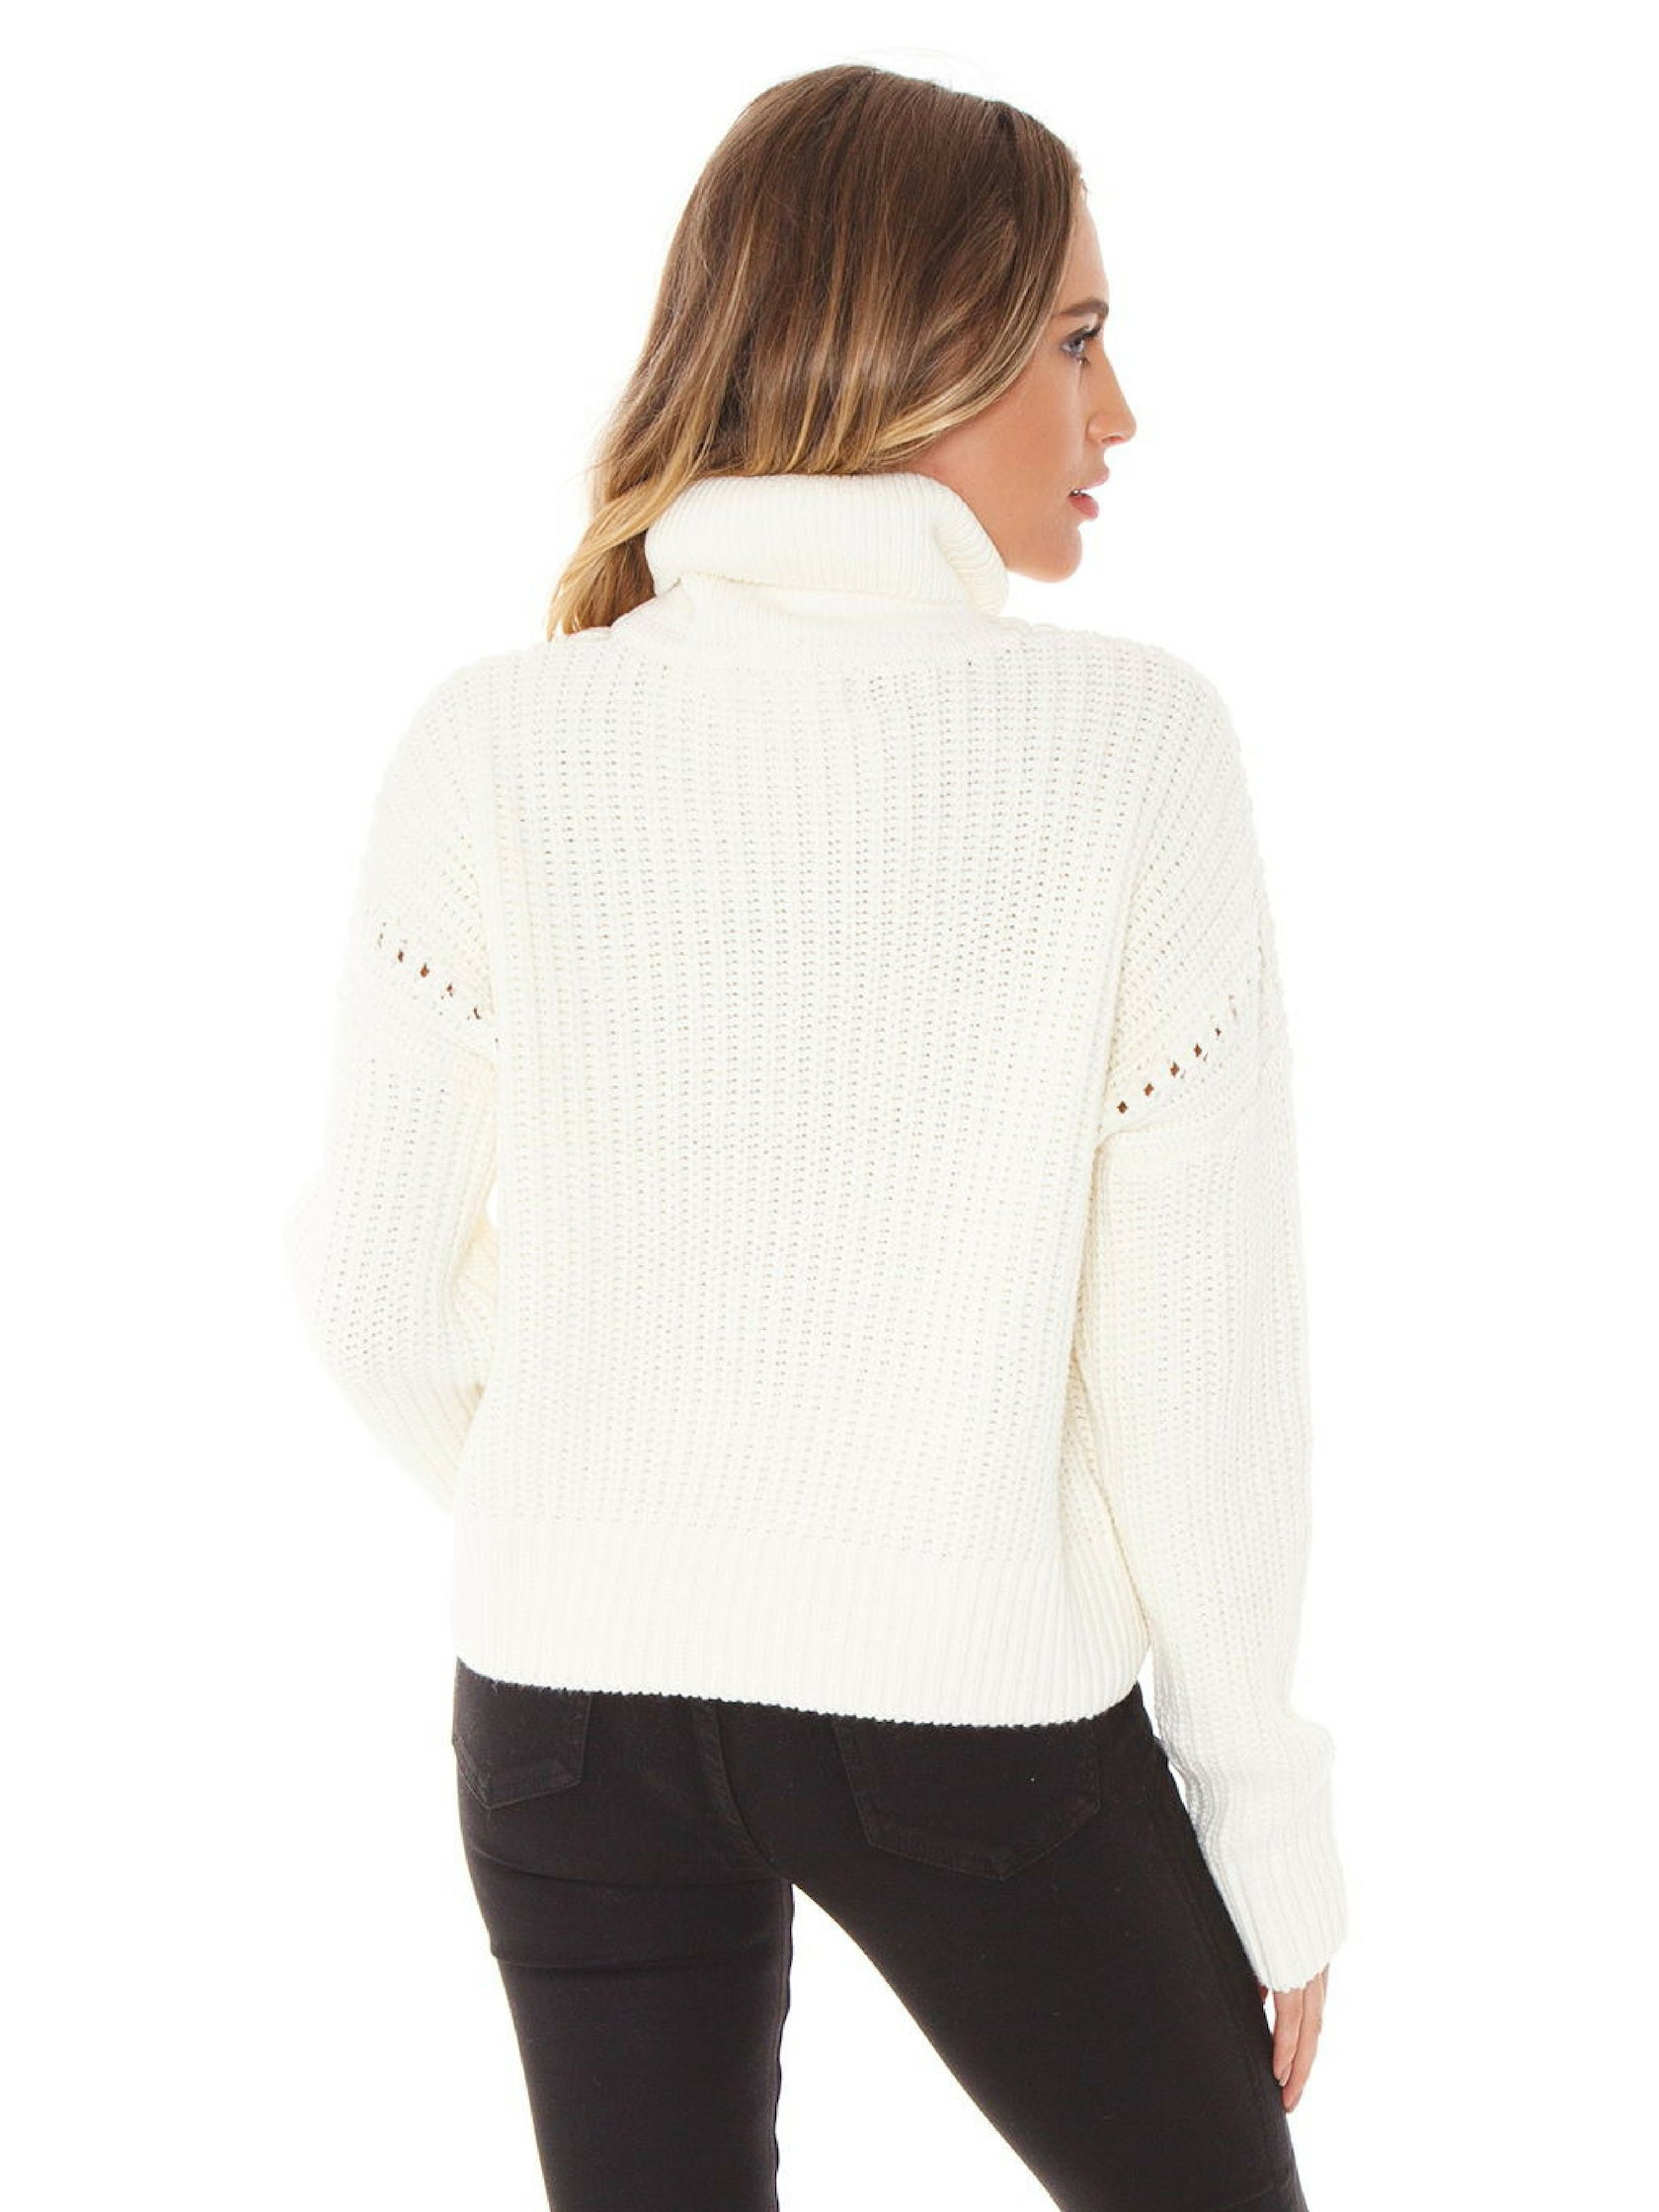 Women outfit in a sweater rental from Bishop + Young called Fireside Cropped Sweater